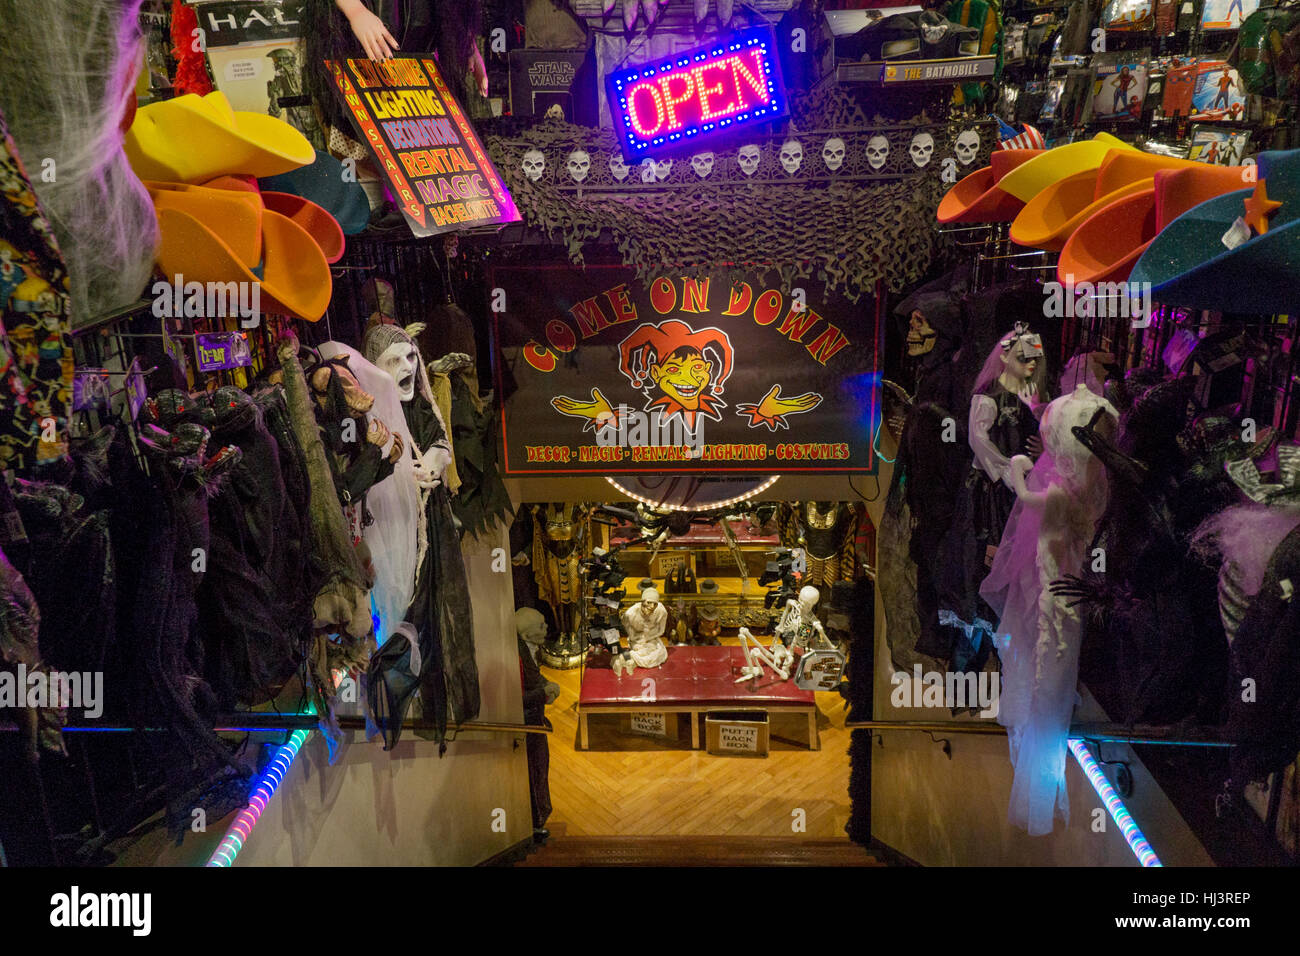 stock photo the interior of the costume shop halloween adventure ion greenwich village manhattan new york city - Halloween Adventure New York